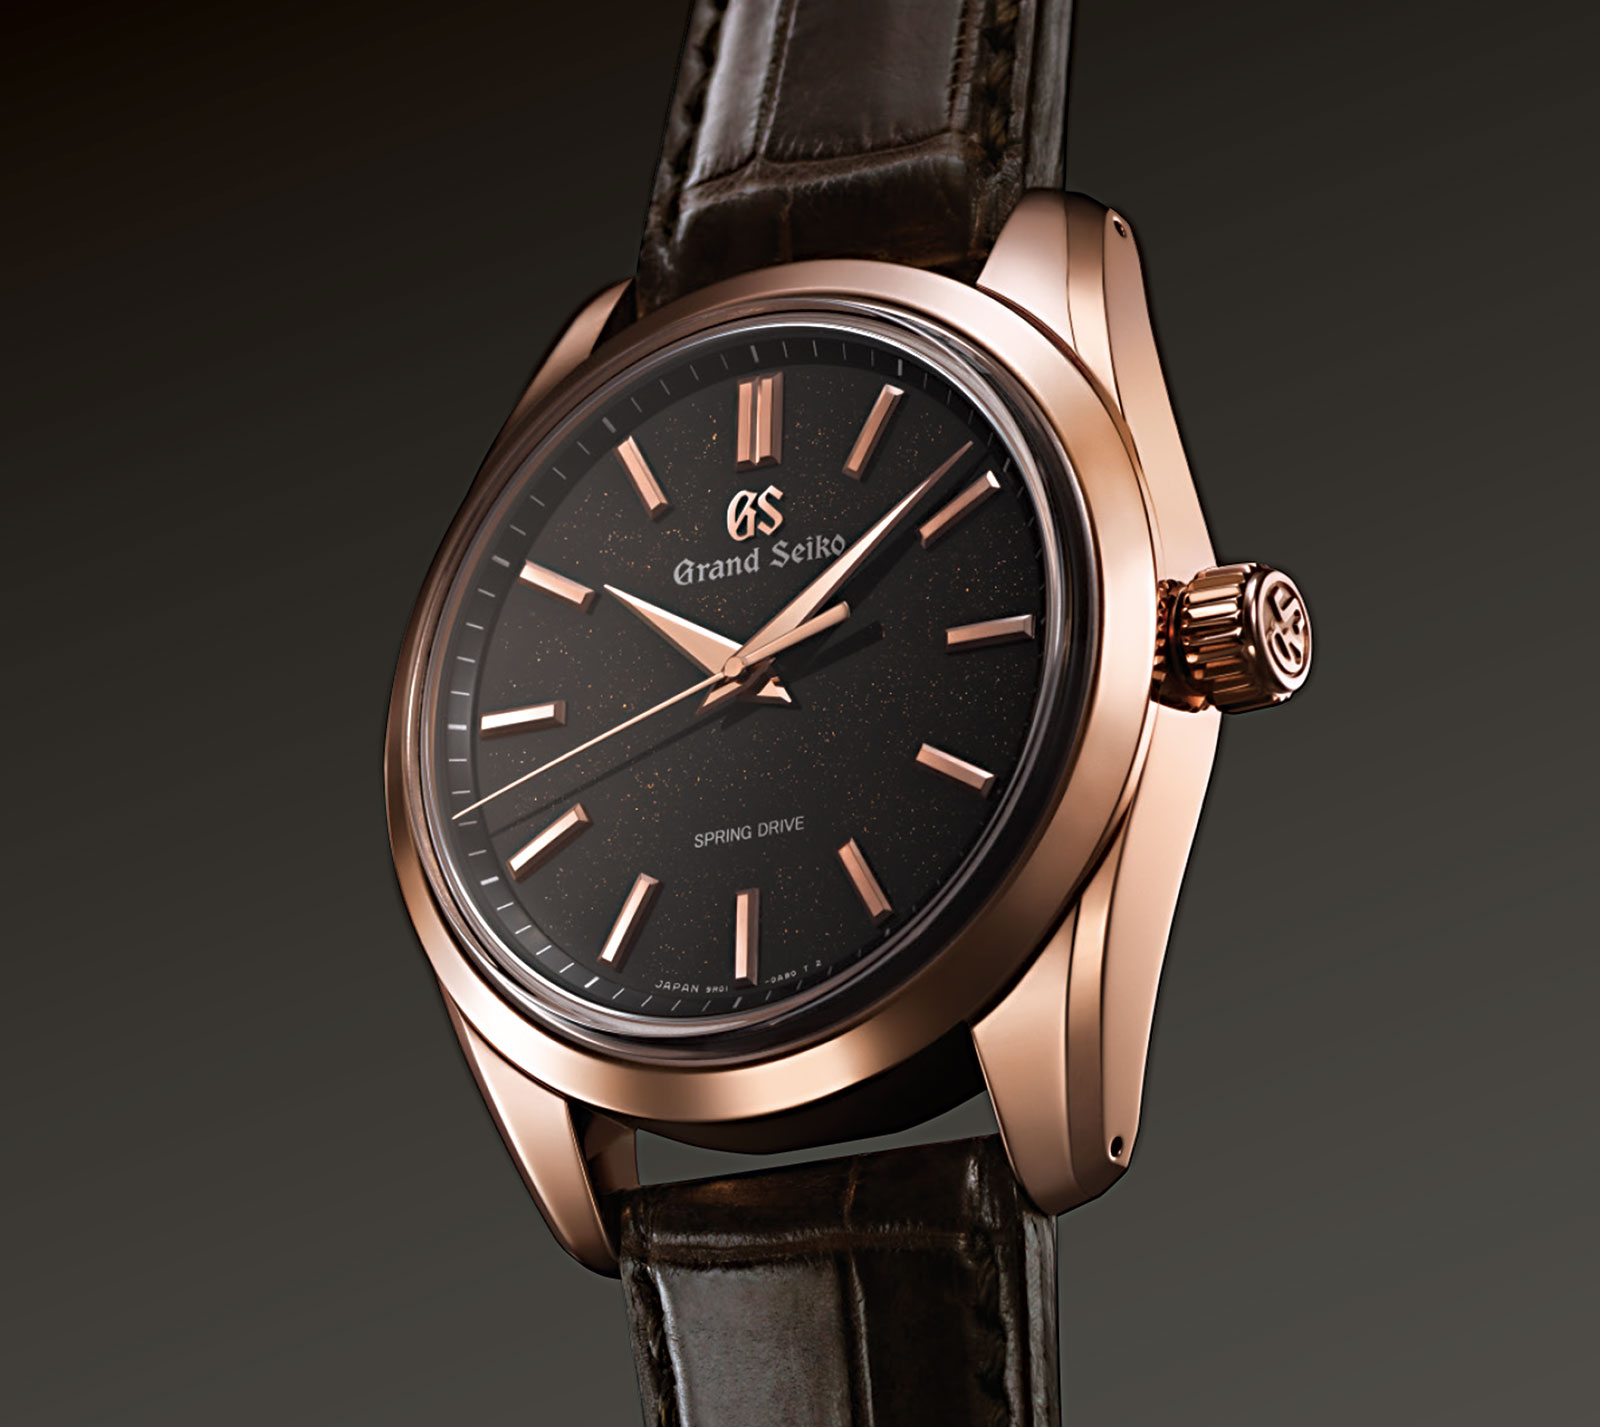 Grand Seiko 8 Day Power Reserve SBGD202 rose gold 2